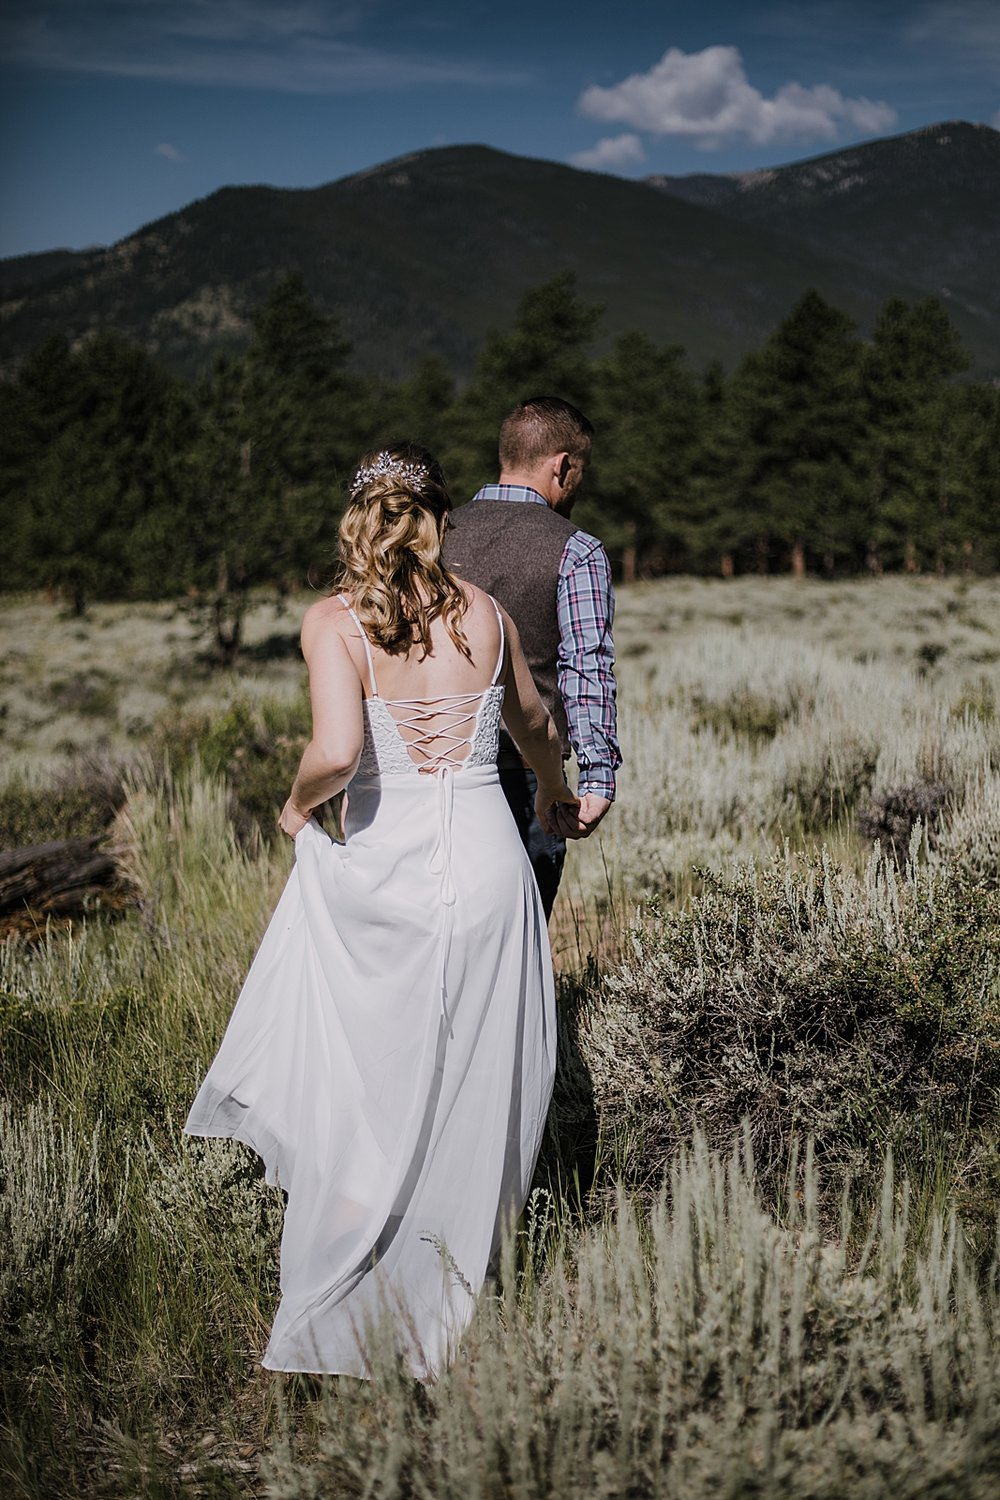 couple hiking, RMNP elopement ceremony, rocky mountain national park elopement, 3M curves elopement, self solemnizing, self solemnization, long's peak, summer hiking elopement, estes park elopement